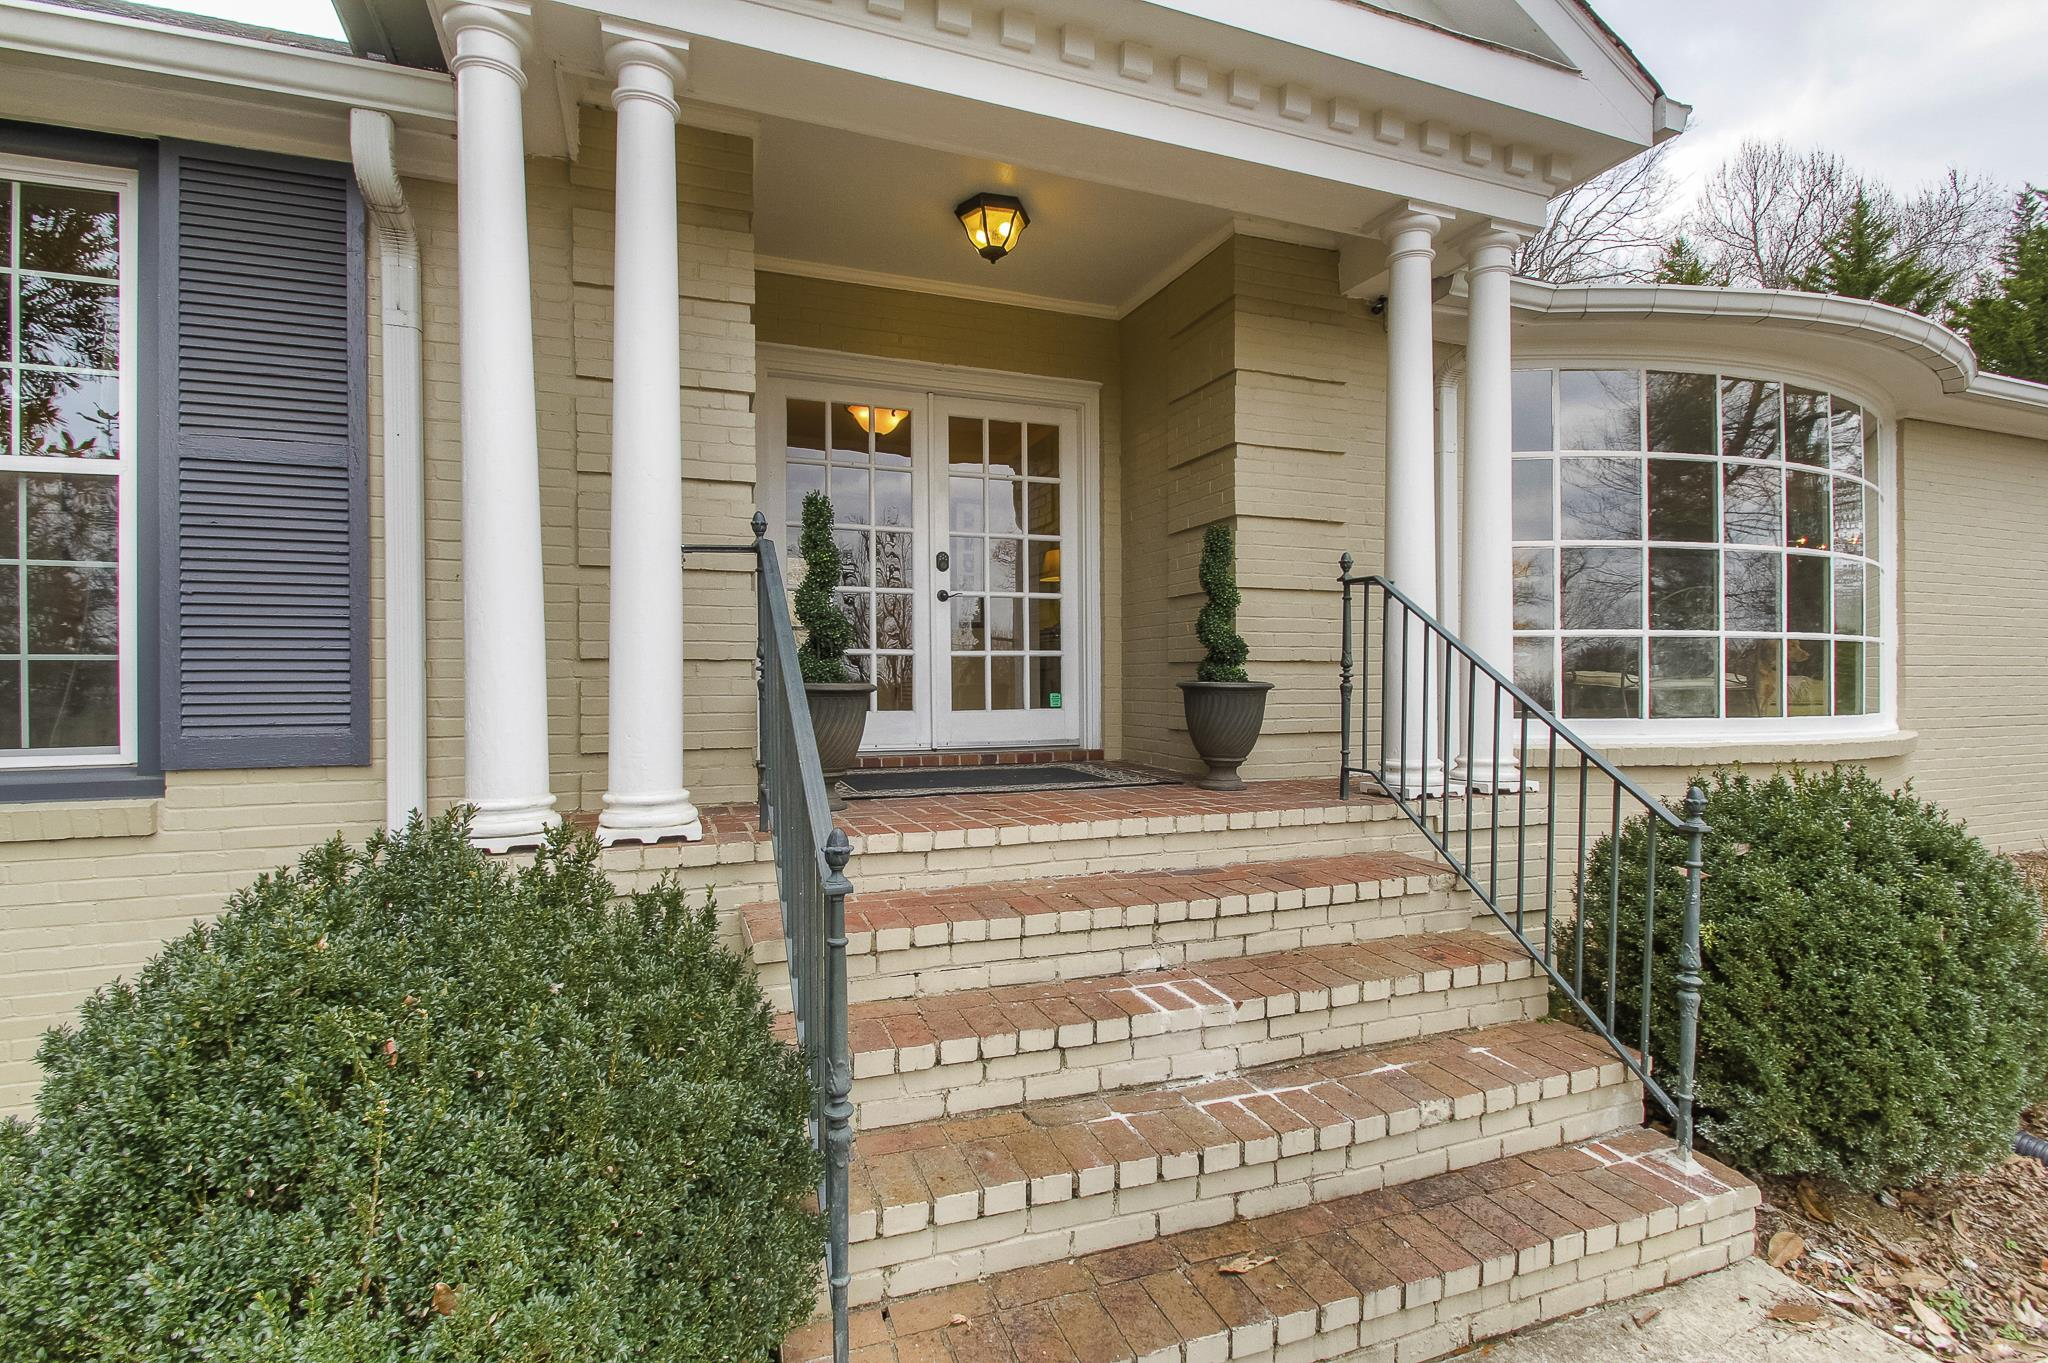 Single Family Home for Sale at Charming Ranch Home 113 Groome Drive Nashville, Tennessee 37205 United States